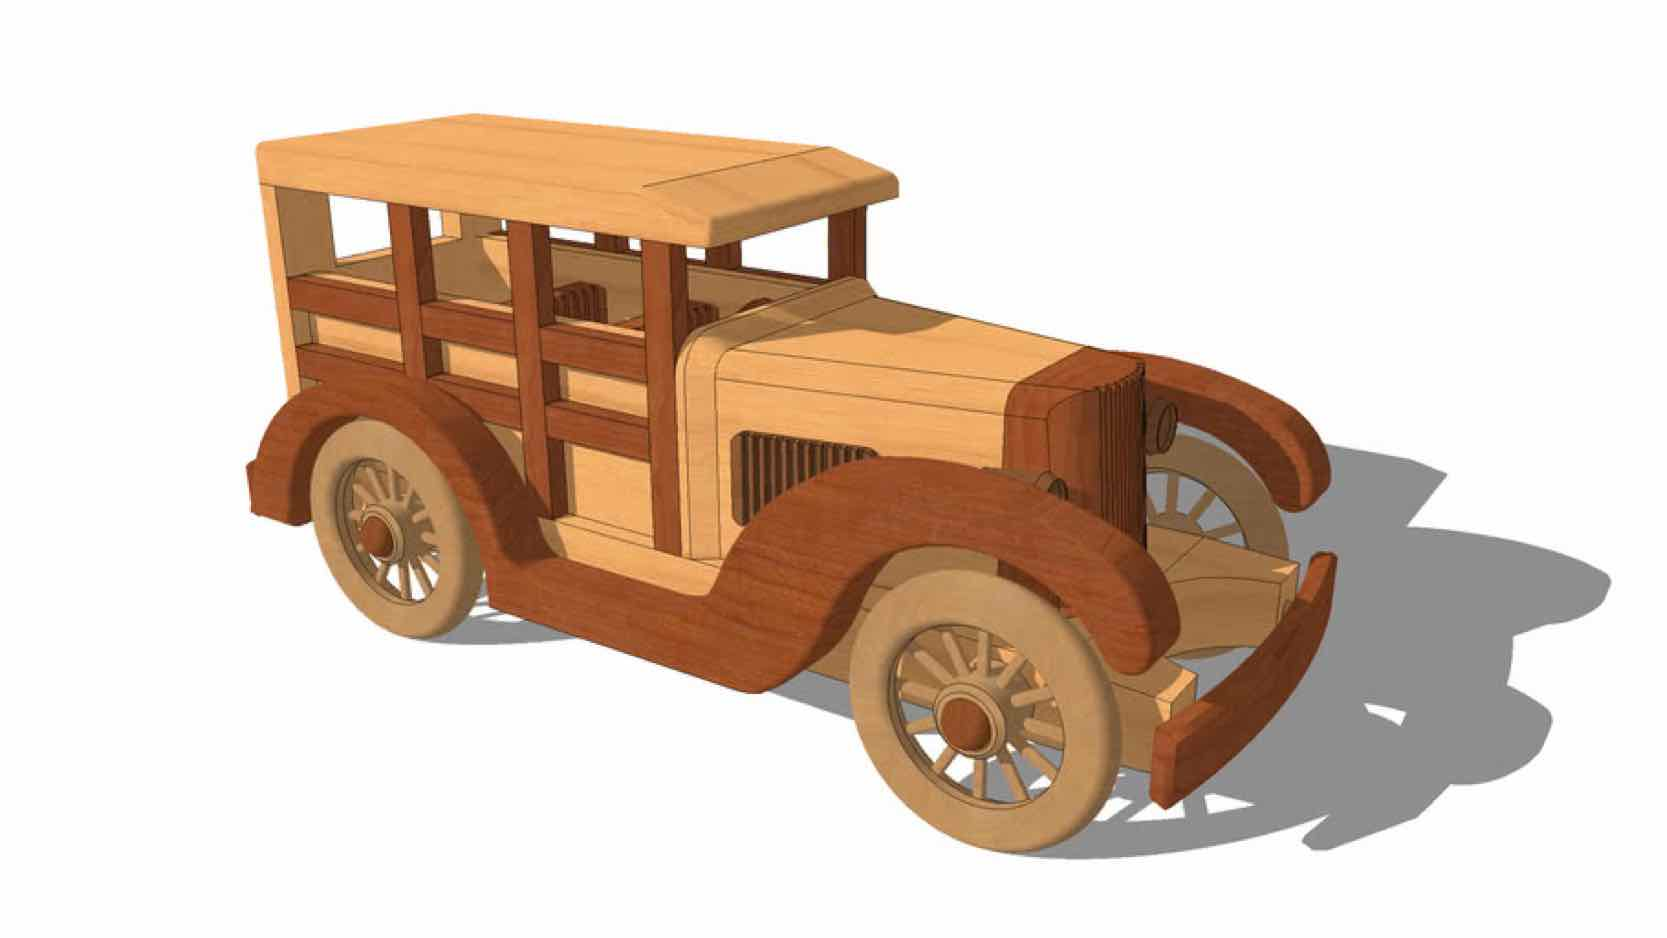 models,toys,antique cars,sketchup,Google 3D,3-D warehouse,childrens,drawings,free woodworking plans,projects,do it yourself,woodworkers